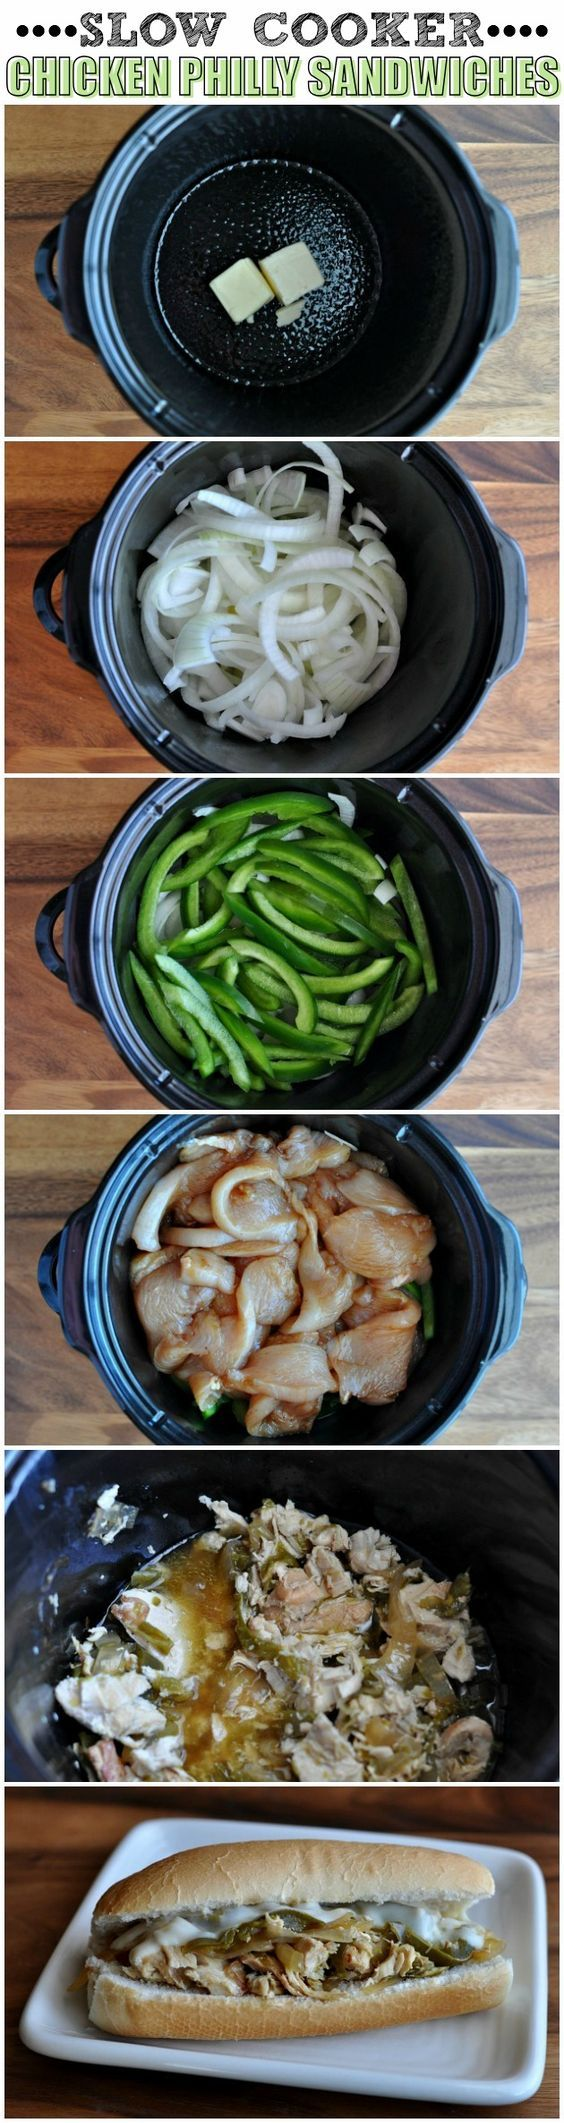 Made this for the family on 4/20/13 but we did not eat until the next day. Flavor was outstanding and was very moist and tender. I replaced the green peepers with peperoncini and used half of an onion. Family loved it. Slow Cooker Chicken Philly Sandwiches Recipe ~ The chicken comes out incredibly tender and so delicious!